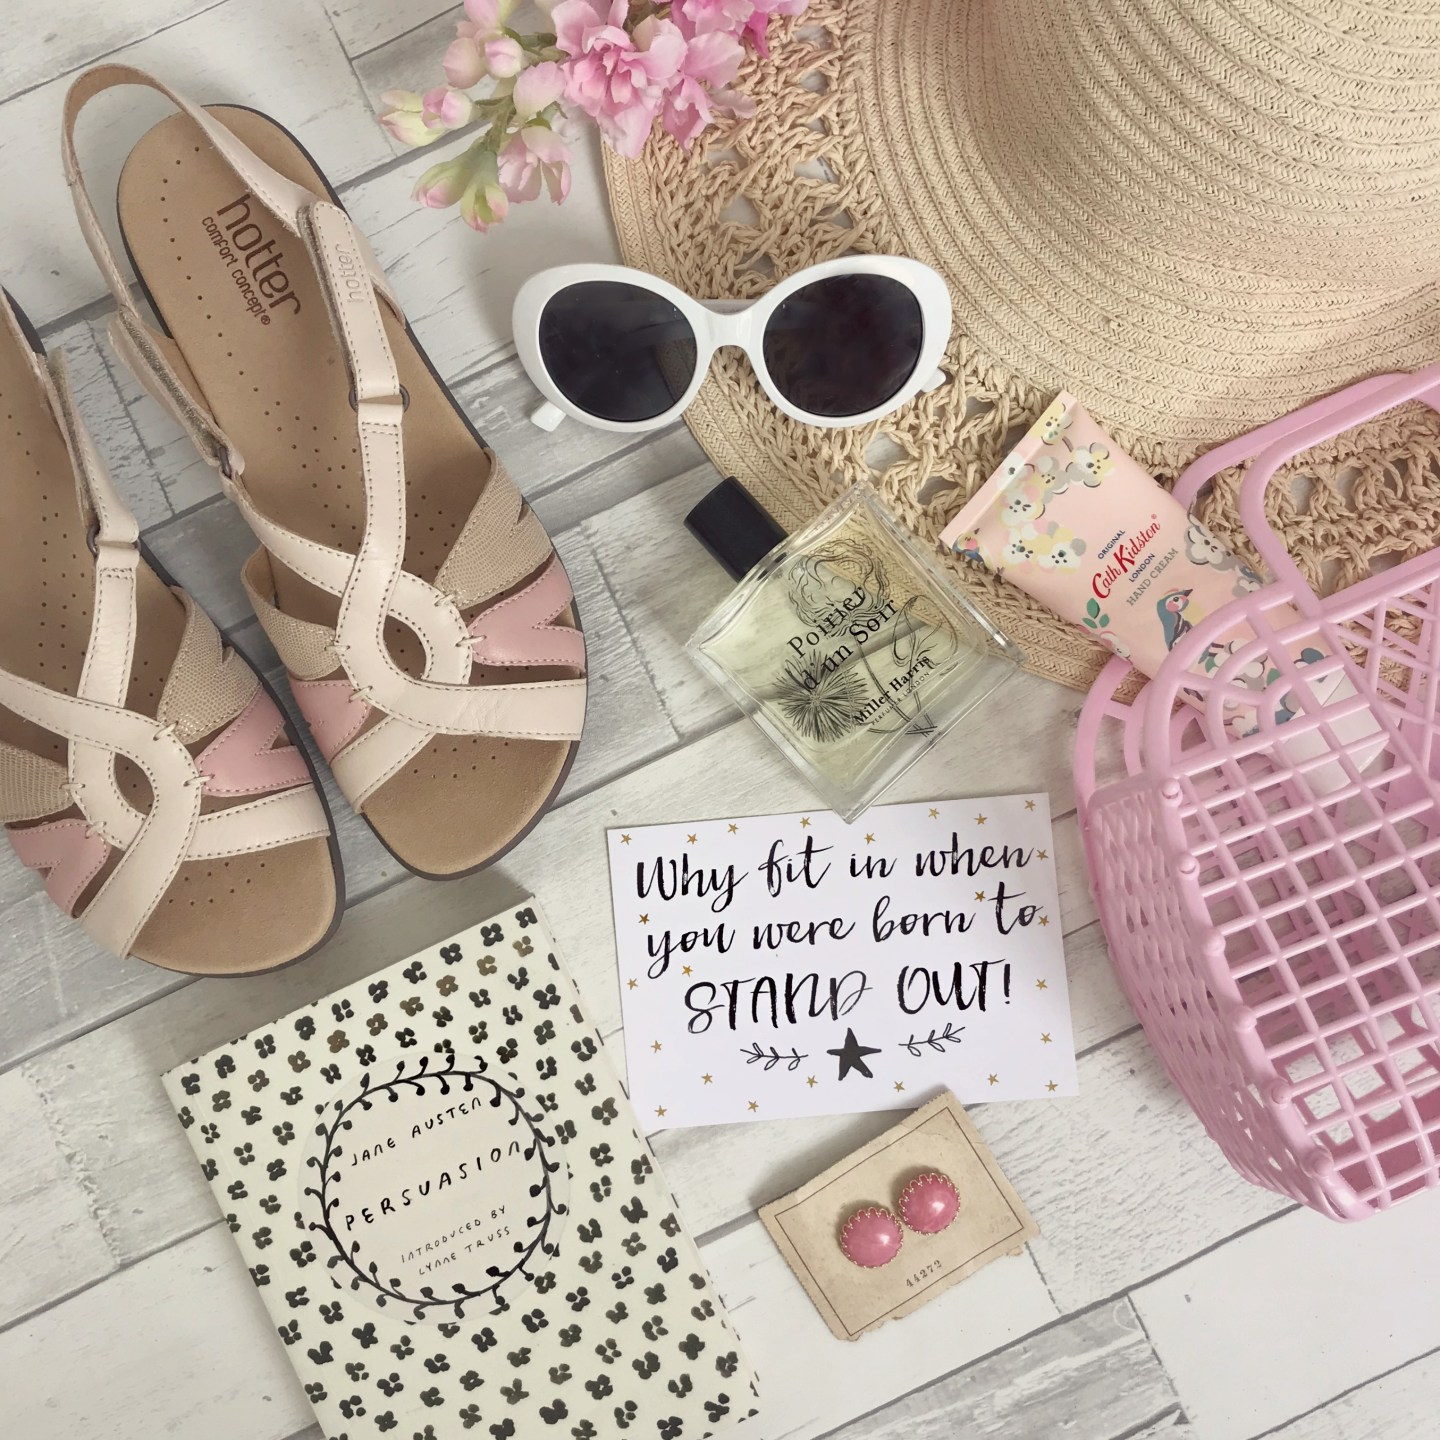 Summer Holiday Outfit Planning with Hotter Shoes